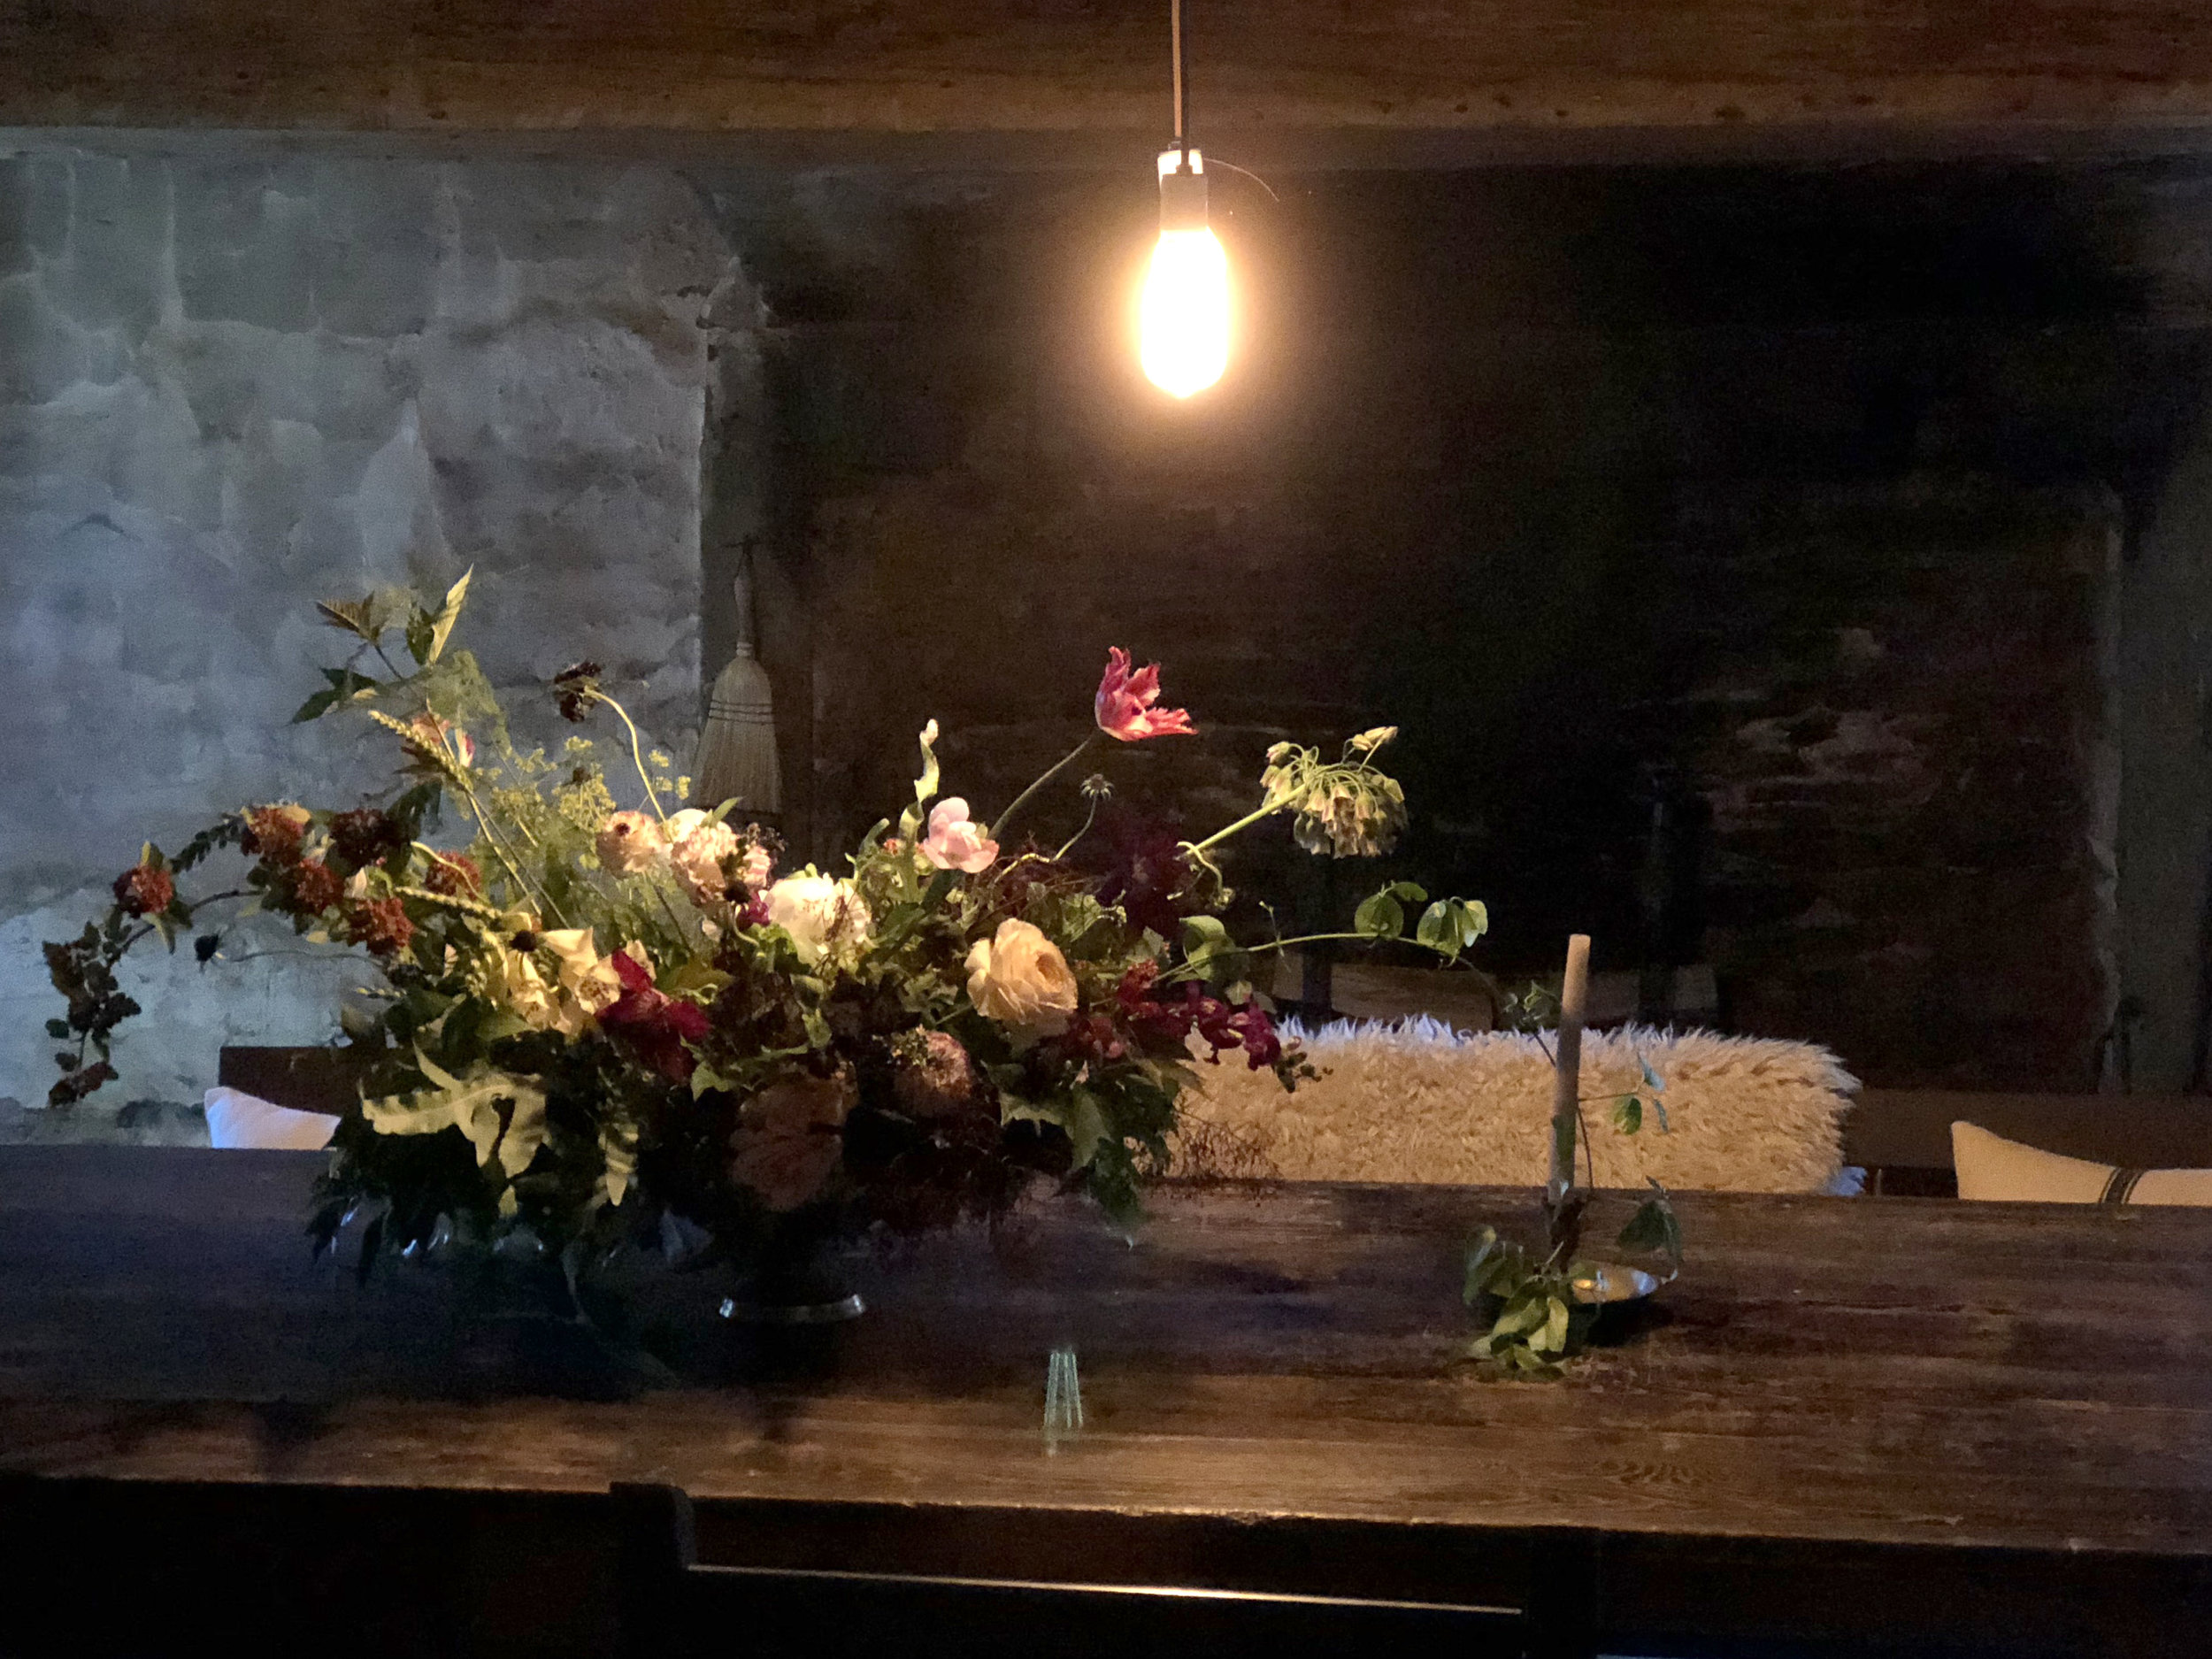 The dining room is in the lower section, which is built into a hill and has limited natural light. Caroline and I quickly agreed to create a 'moody' floral arrangement to play off the vibe of the room. I added clematis vine that was growing around a stone smokehouse on the property to the candle stick and some ninebark branches from the garden to help bring the outdoors inside.